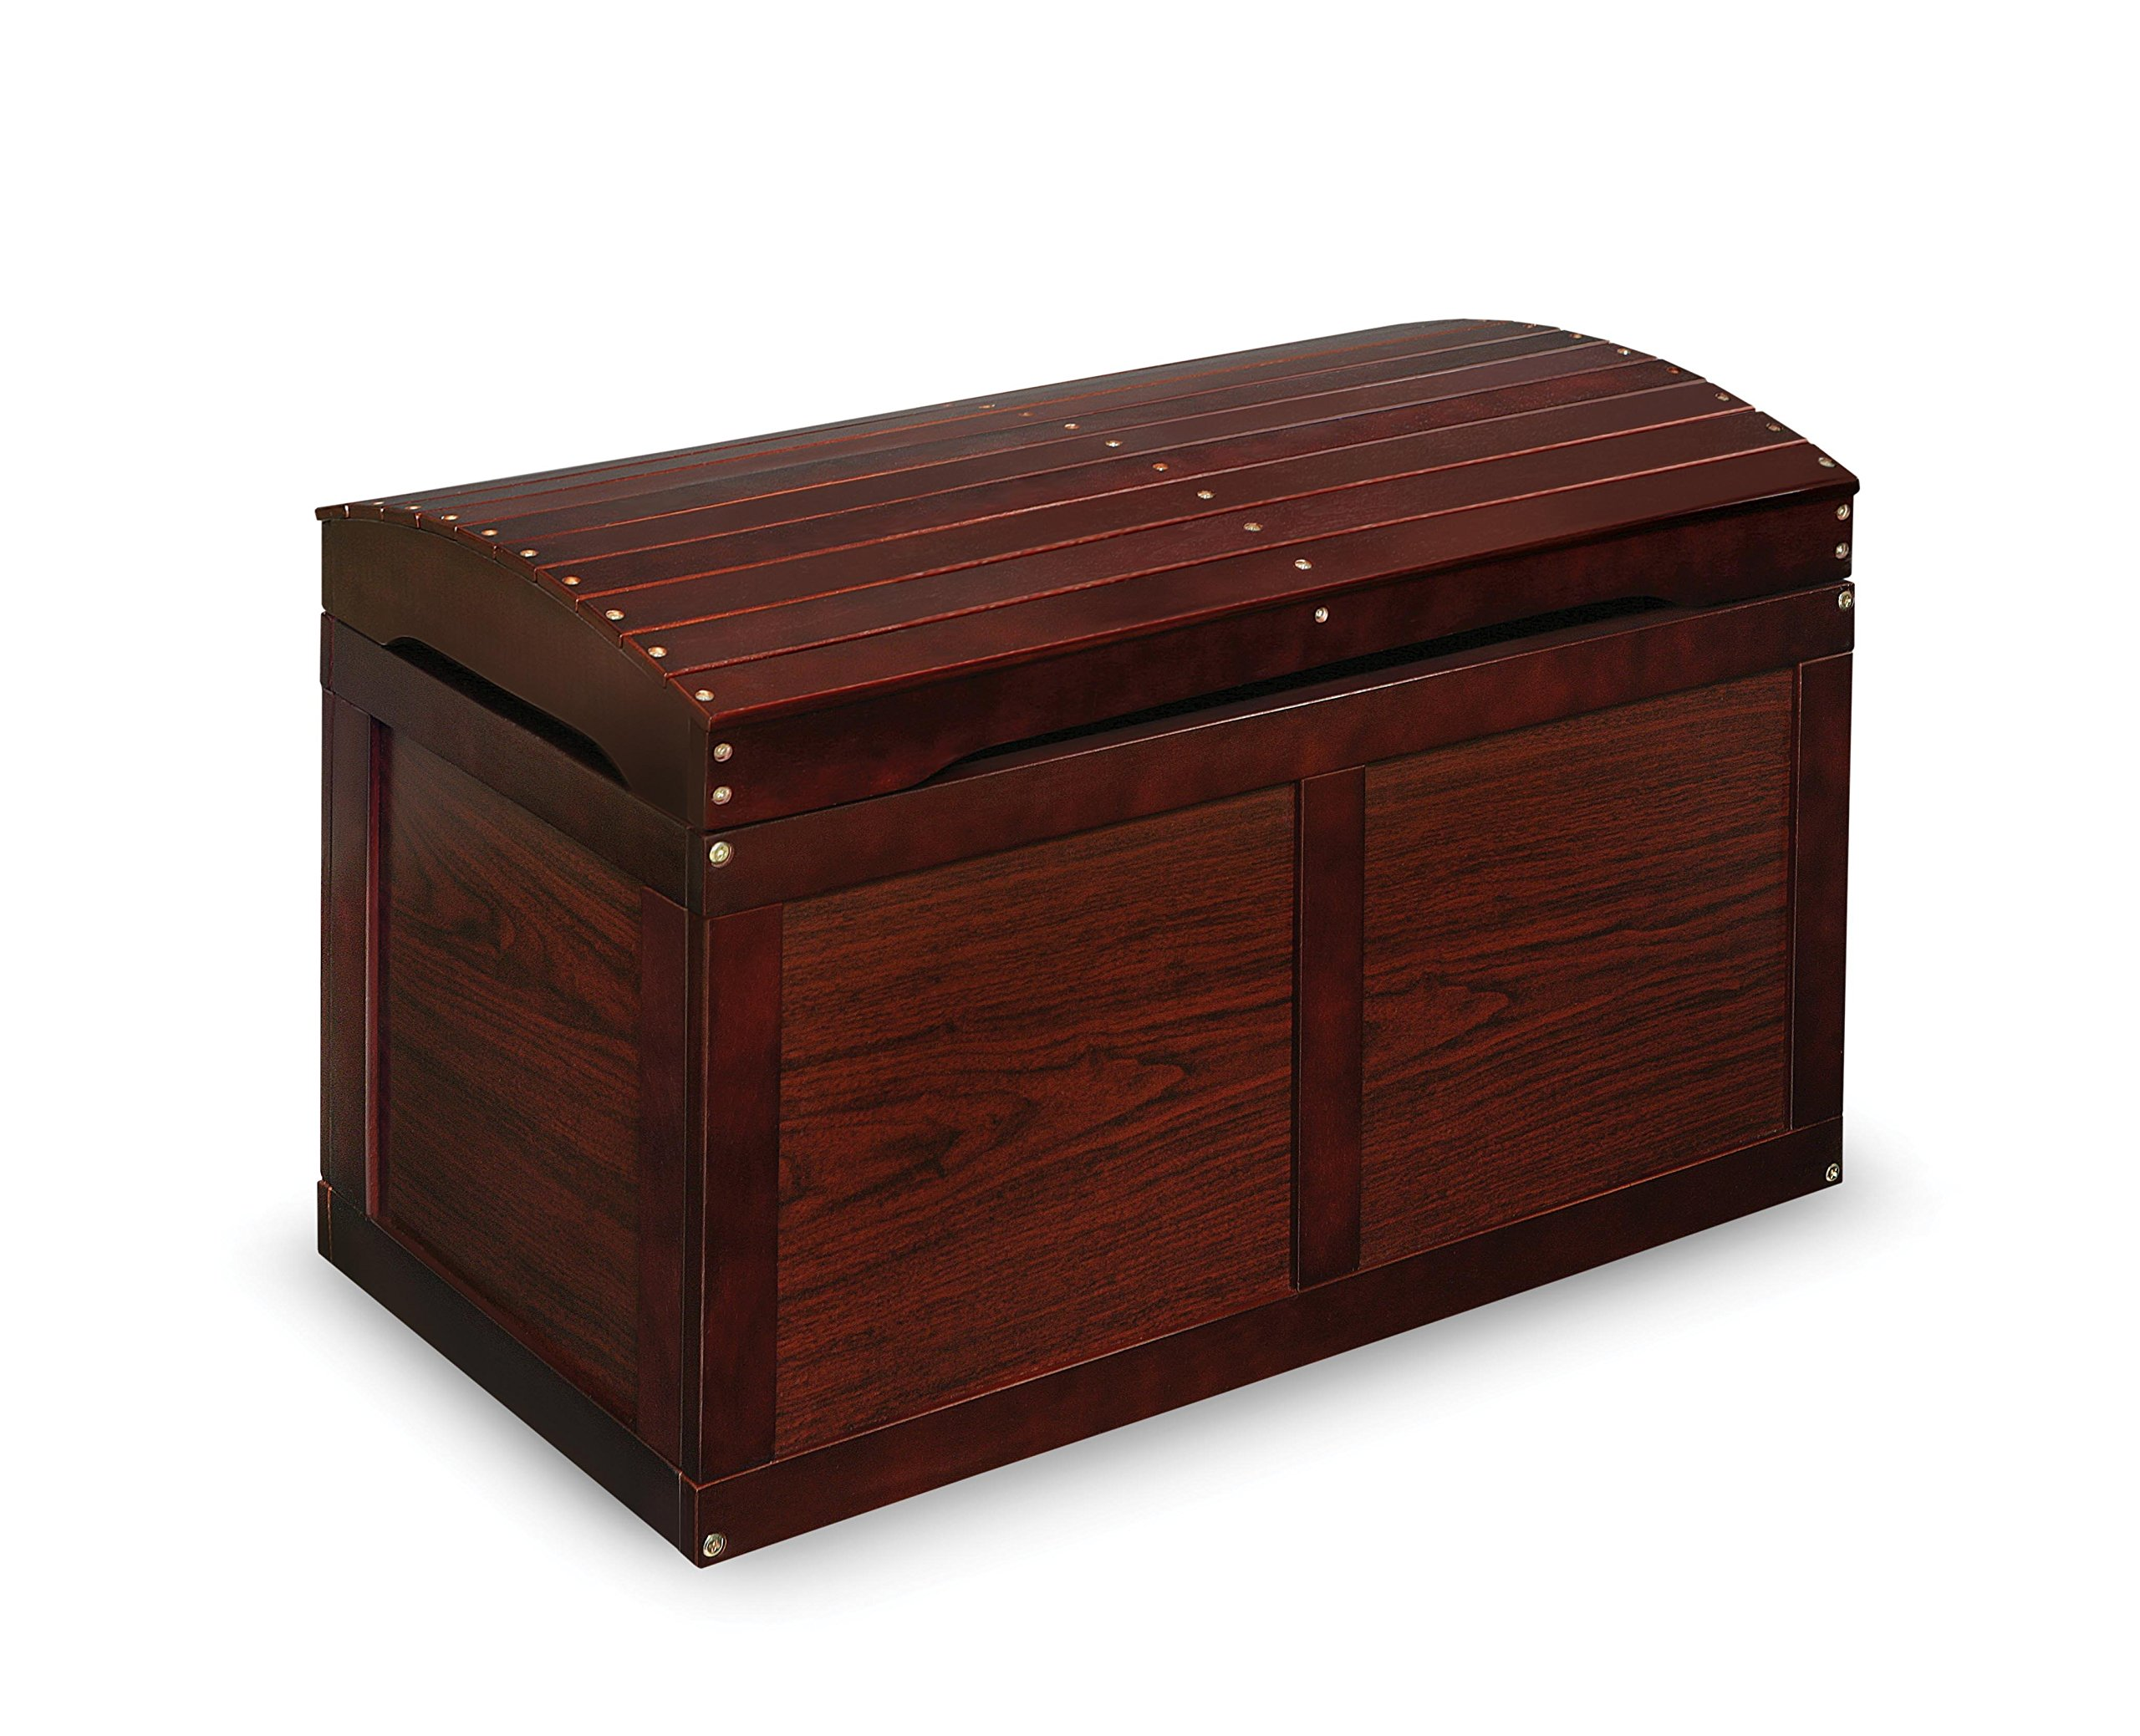 Barrel-Top Toy Chest - Cherry